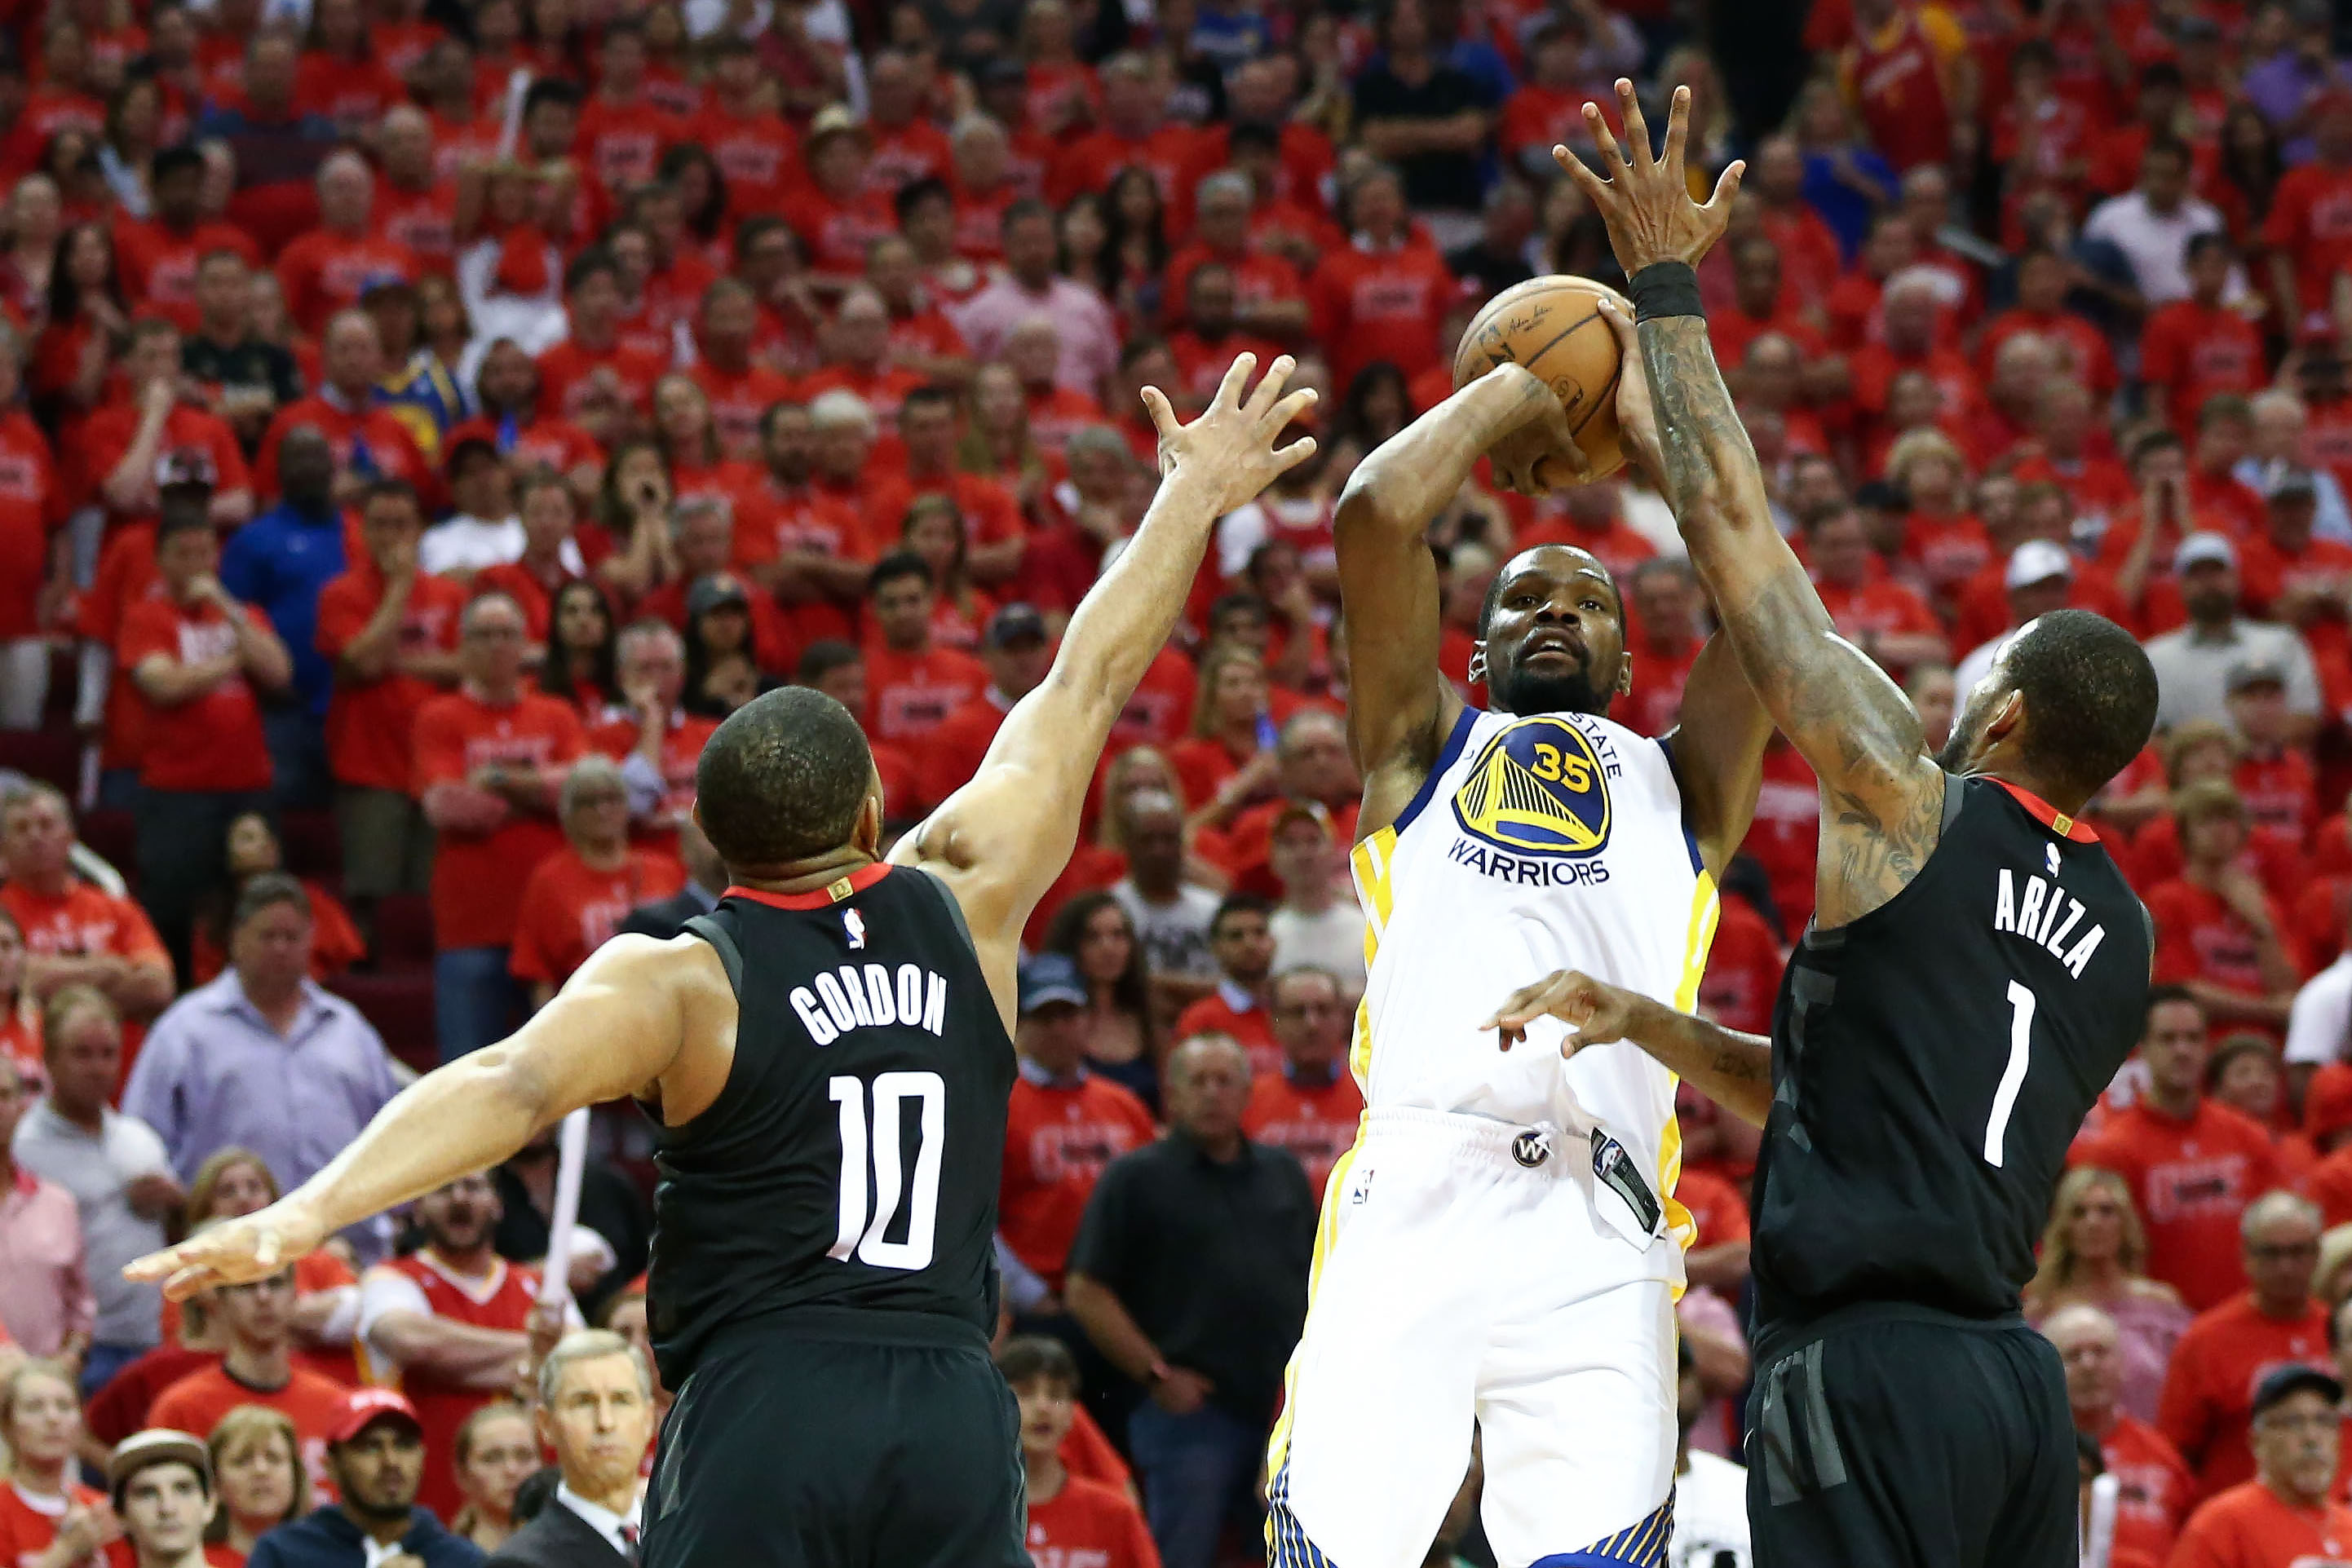 May 28, 2018; Houston, TX, USA; Golden State Warriors forward Kevin Durant (35) attempts a three point basket over Houston Rockets guard Eric Gordon (10) and forward Trevor Ariza (1) during the second half of game seven of the Western conference finals of the 2018 NBA Playoffs at Toyota Center. Mandatory Credit: Troy Taormina-USA TODAY Sports